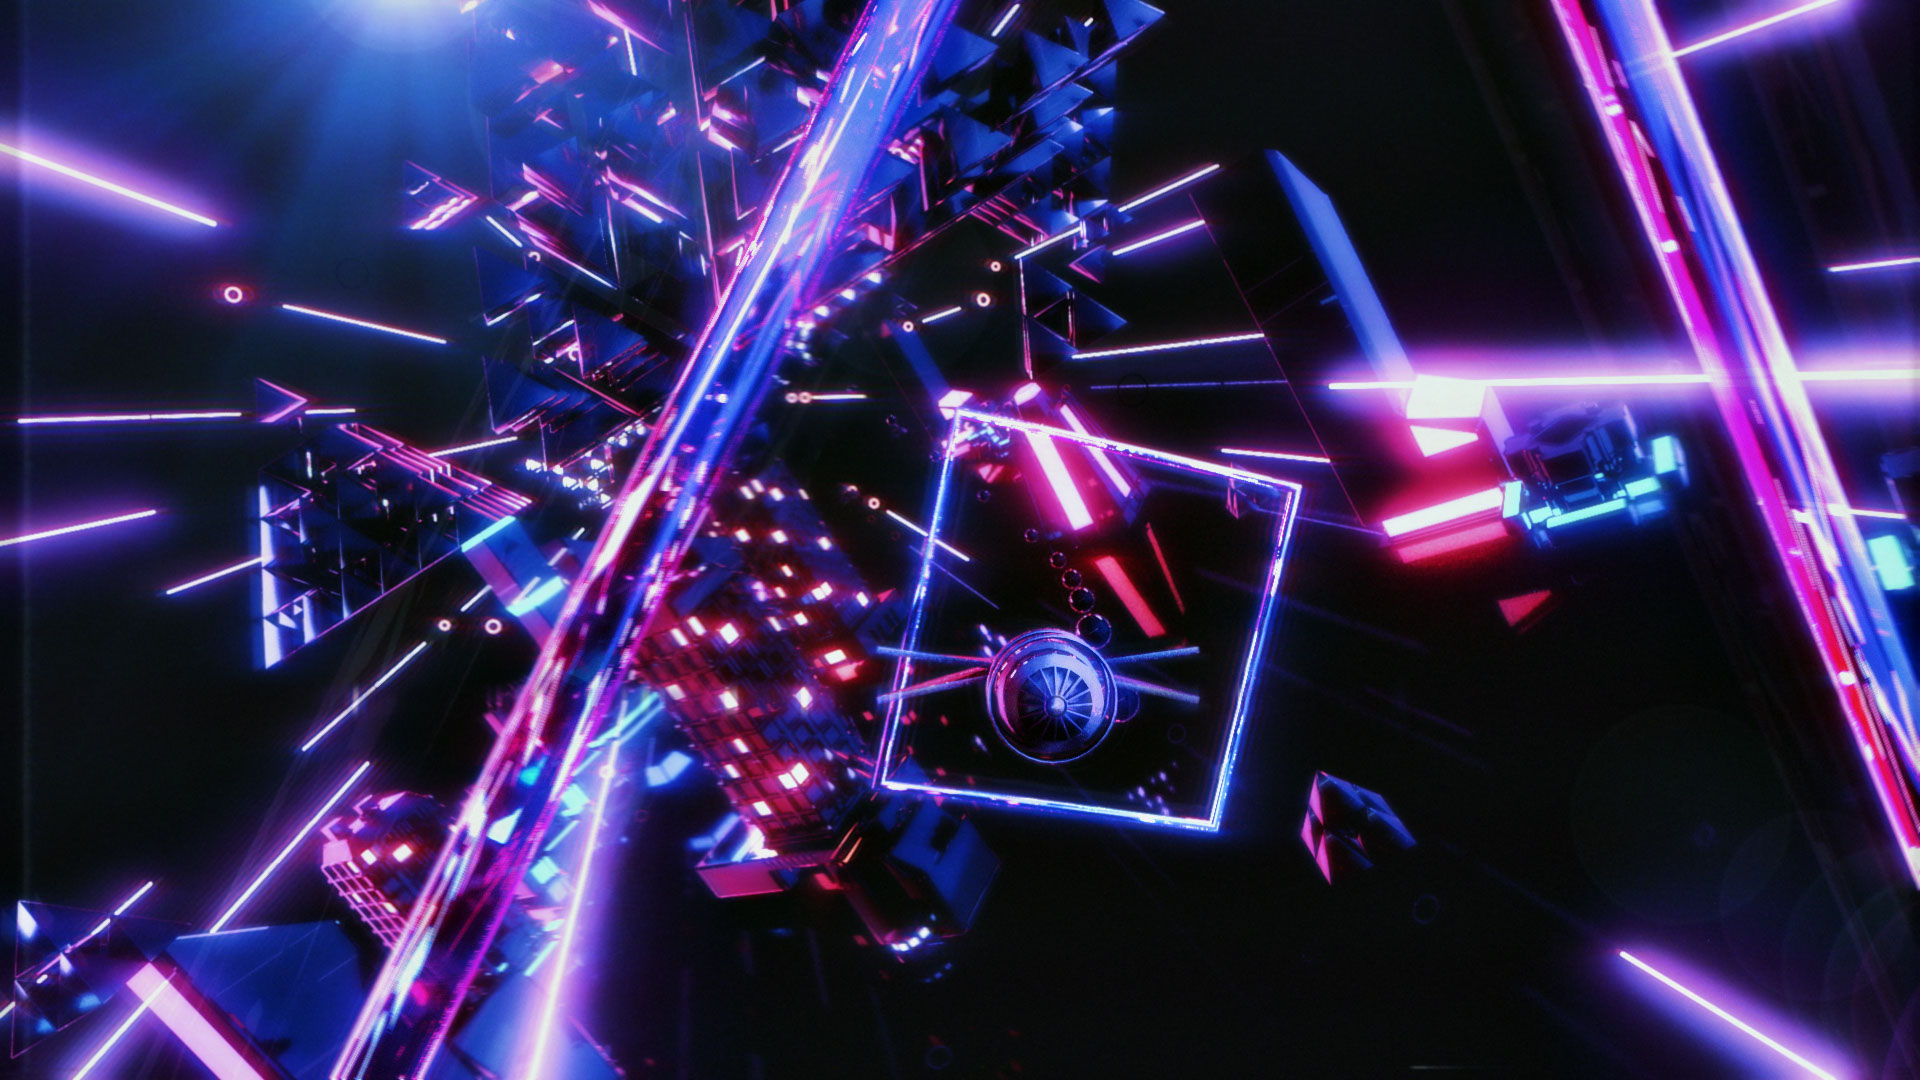 3D Freelance Motion Designer Bristol UK Space Laser Cinema 4D Redshift